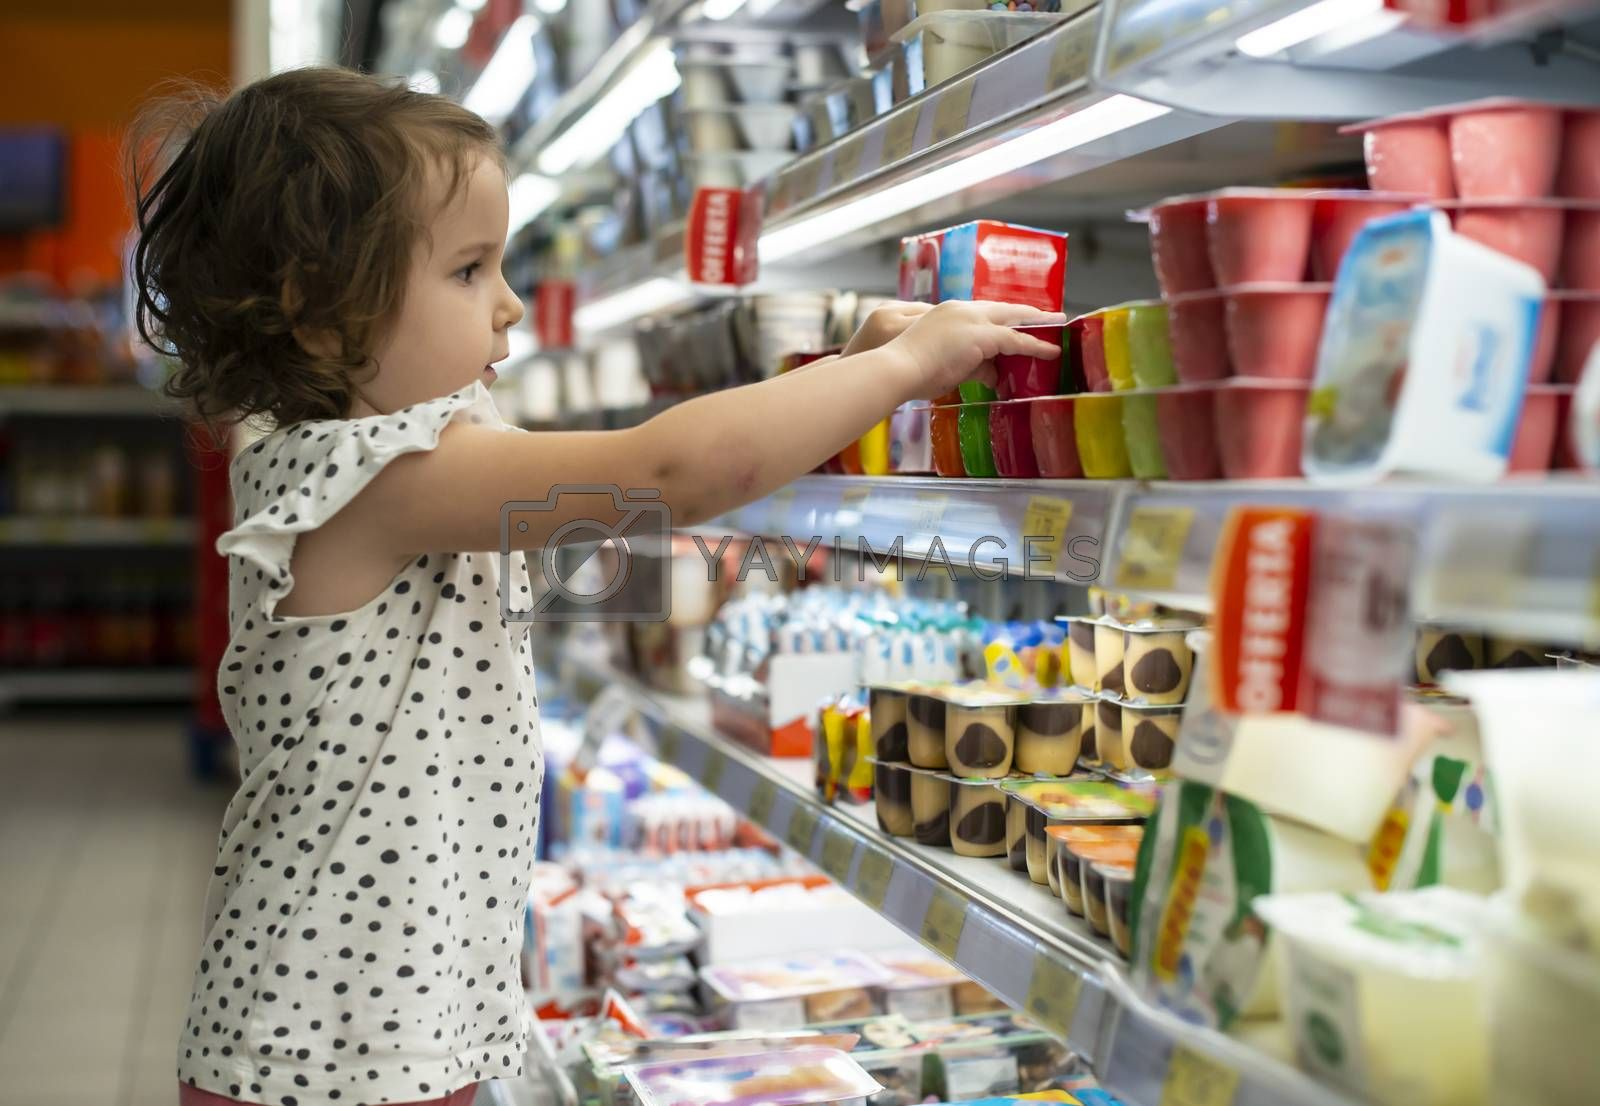 Little girl buying yogurt in supermarket. Child in supermarket select products from store showcase. Concept for children selecting milk products in shop.